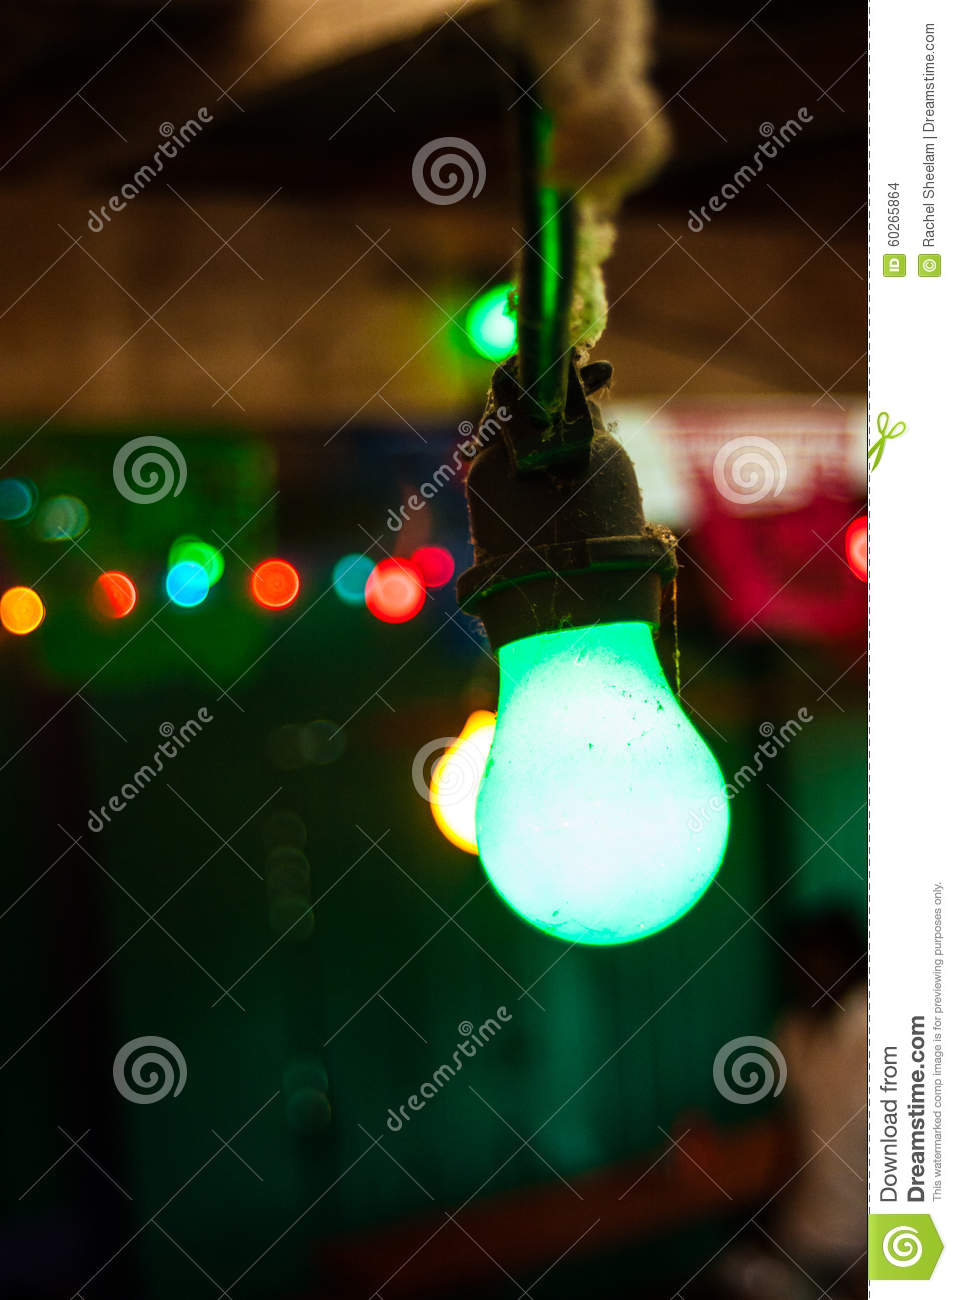 string of colored lights stock photo - Colored Light Bulbs